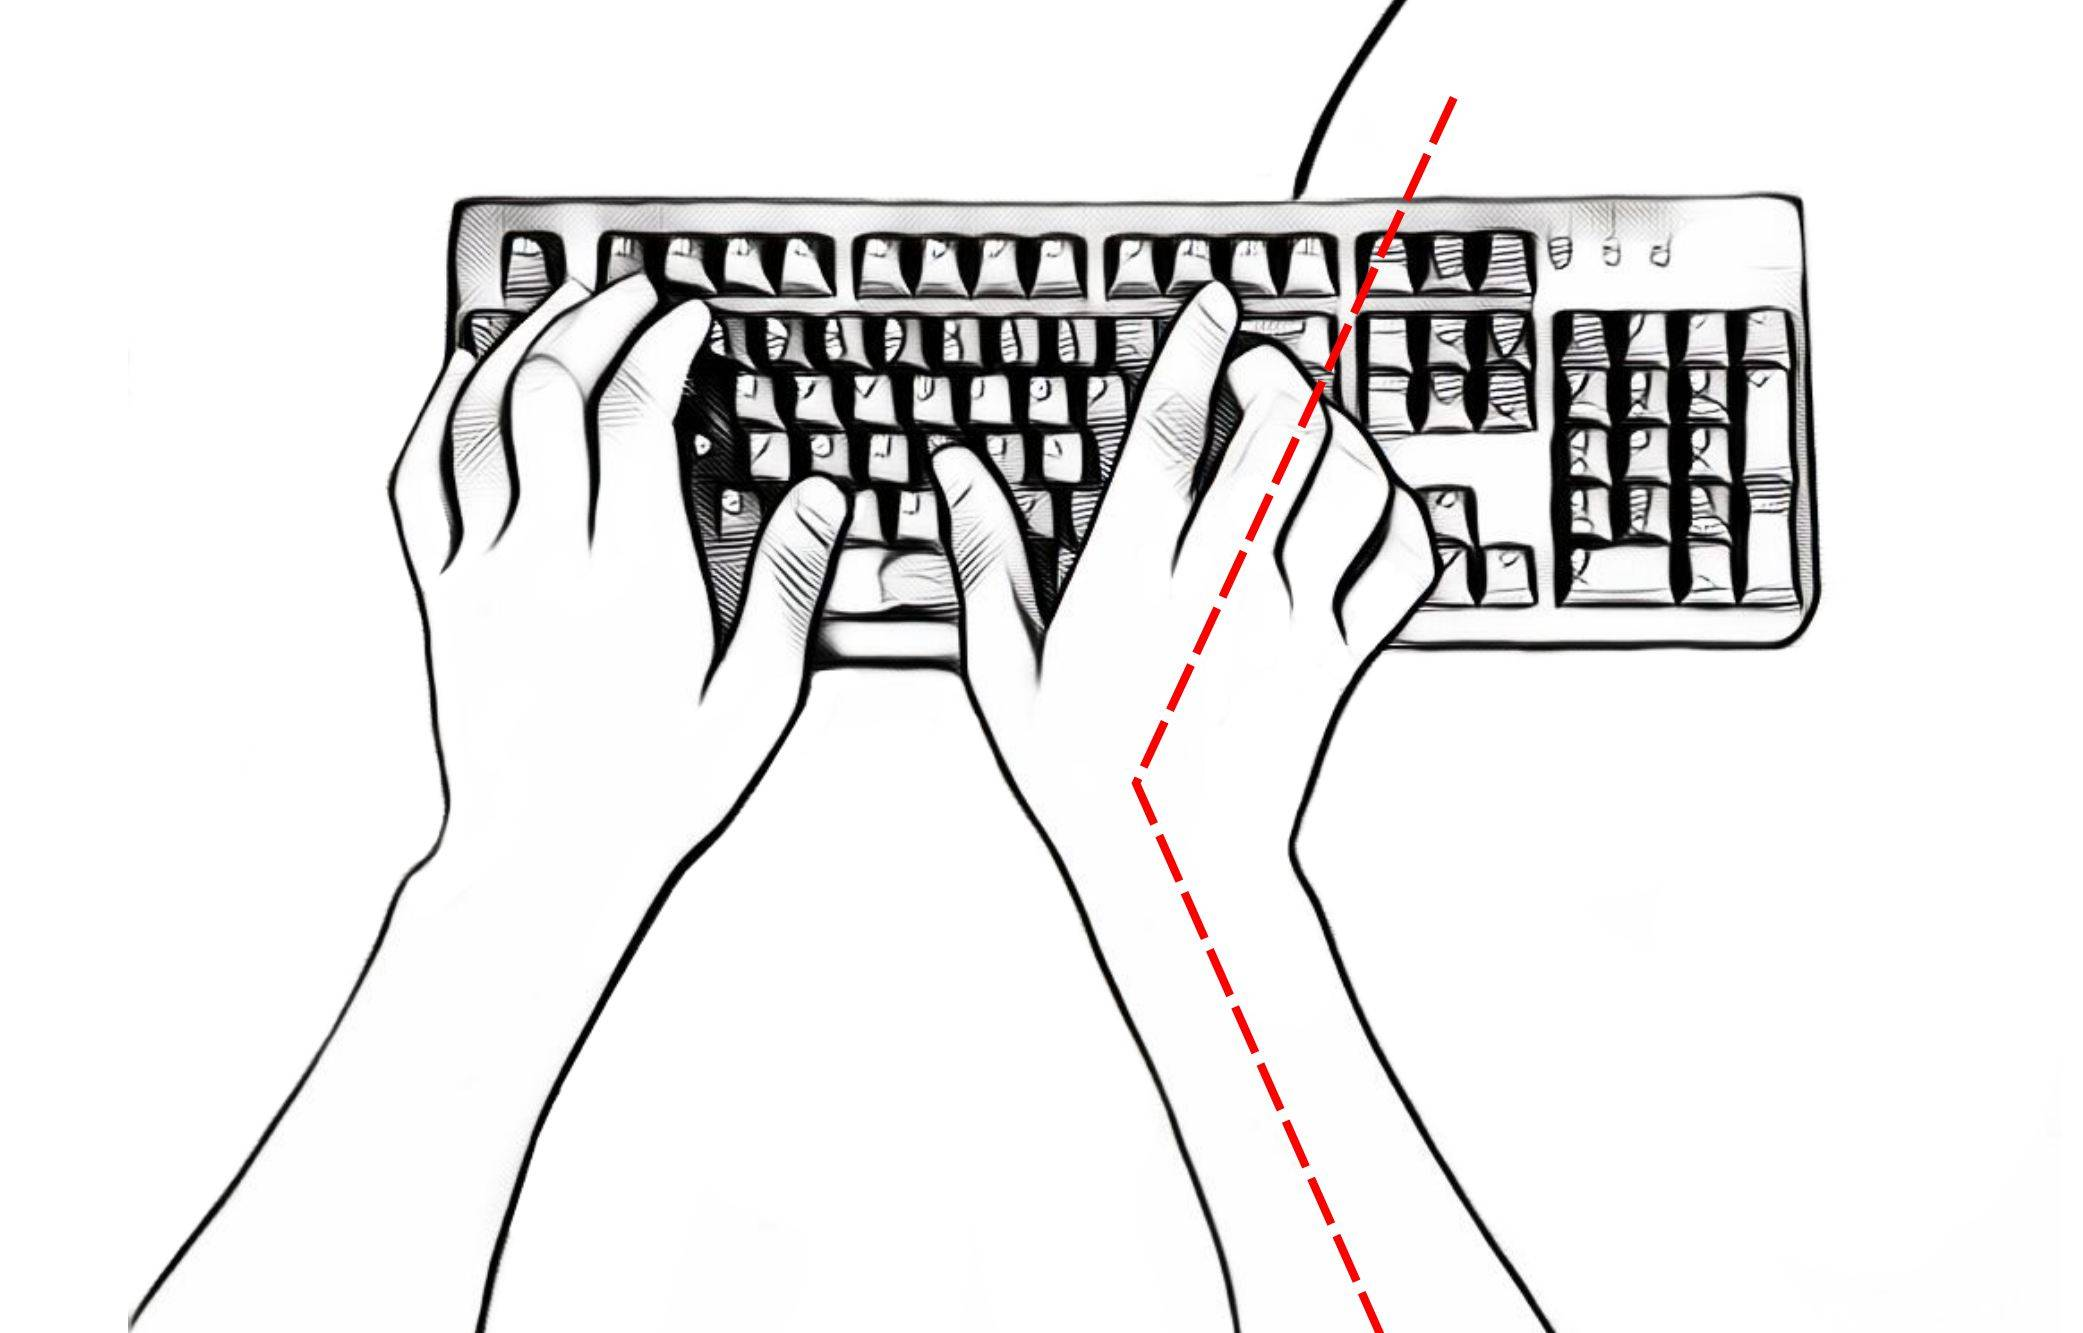 standard keyboard backspace reach